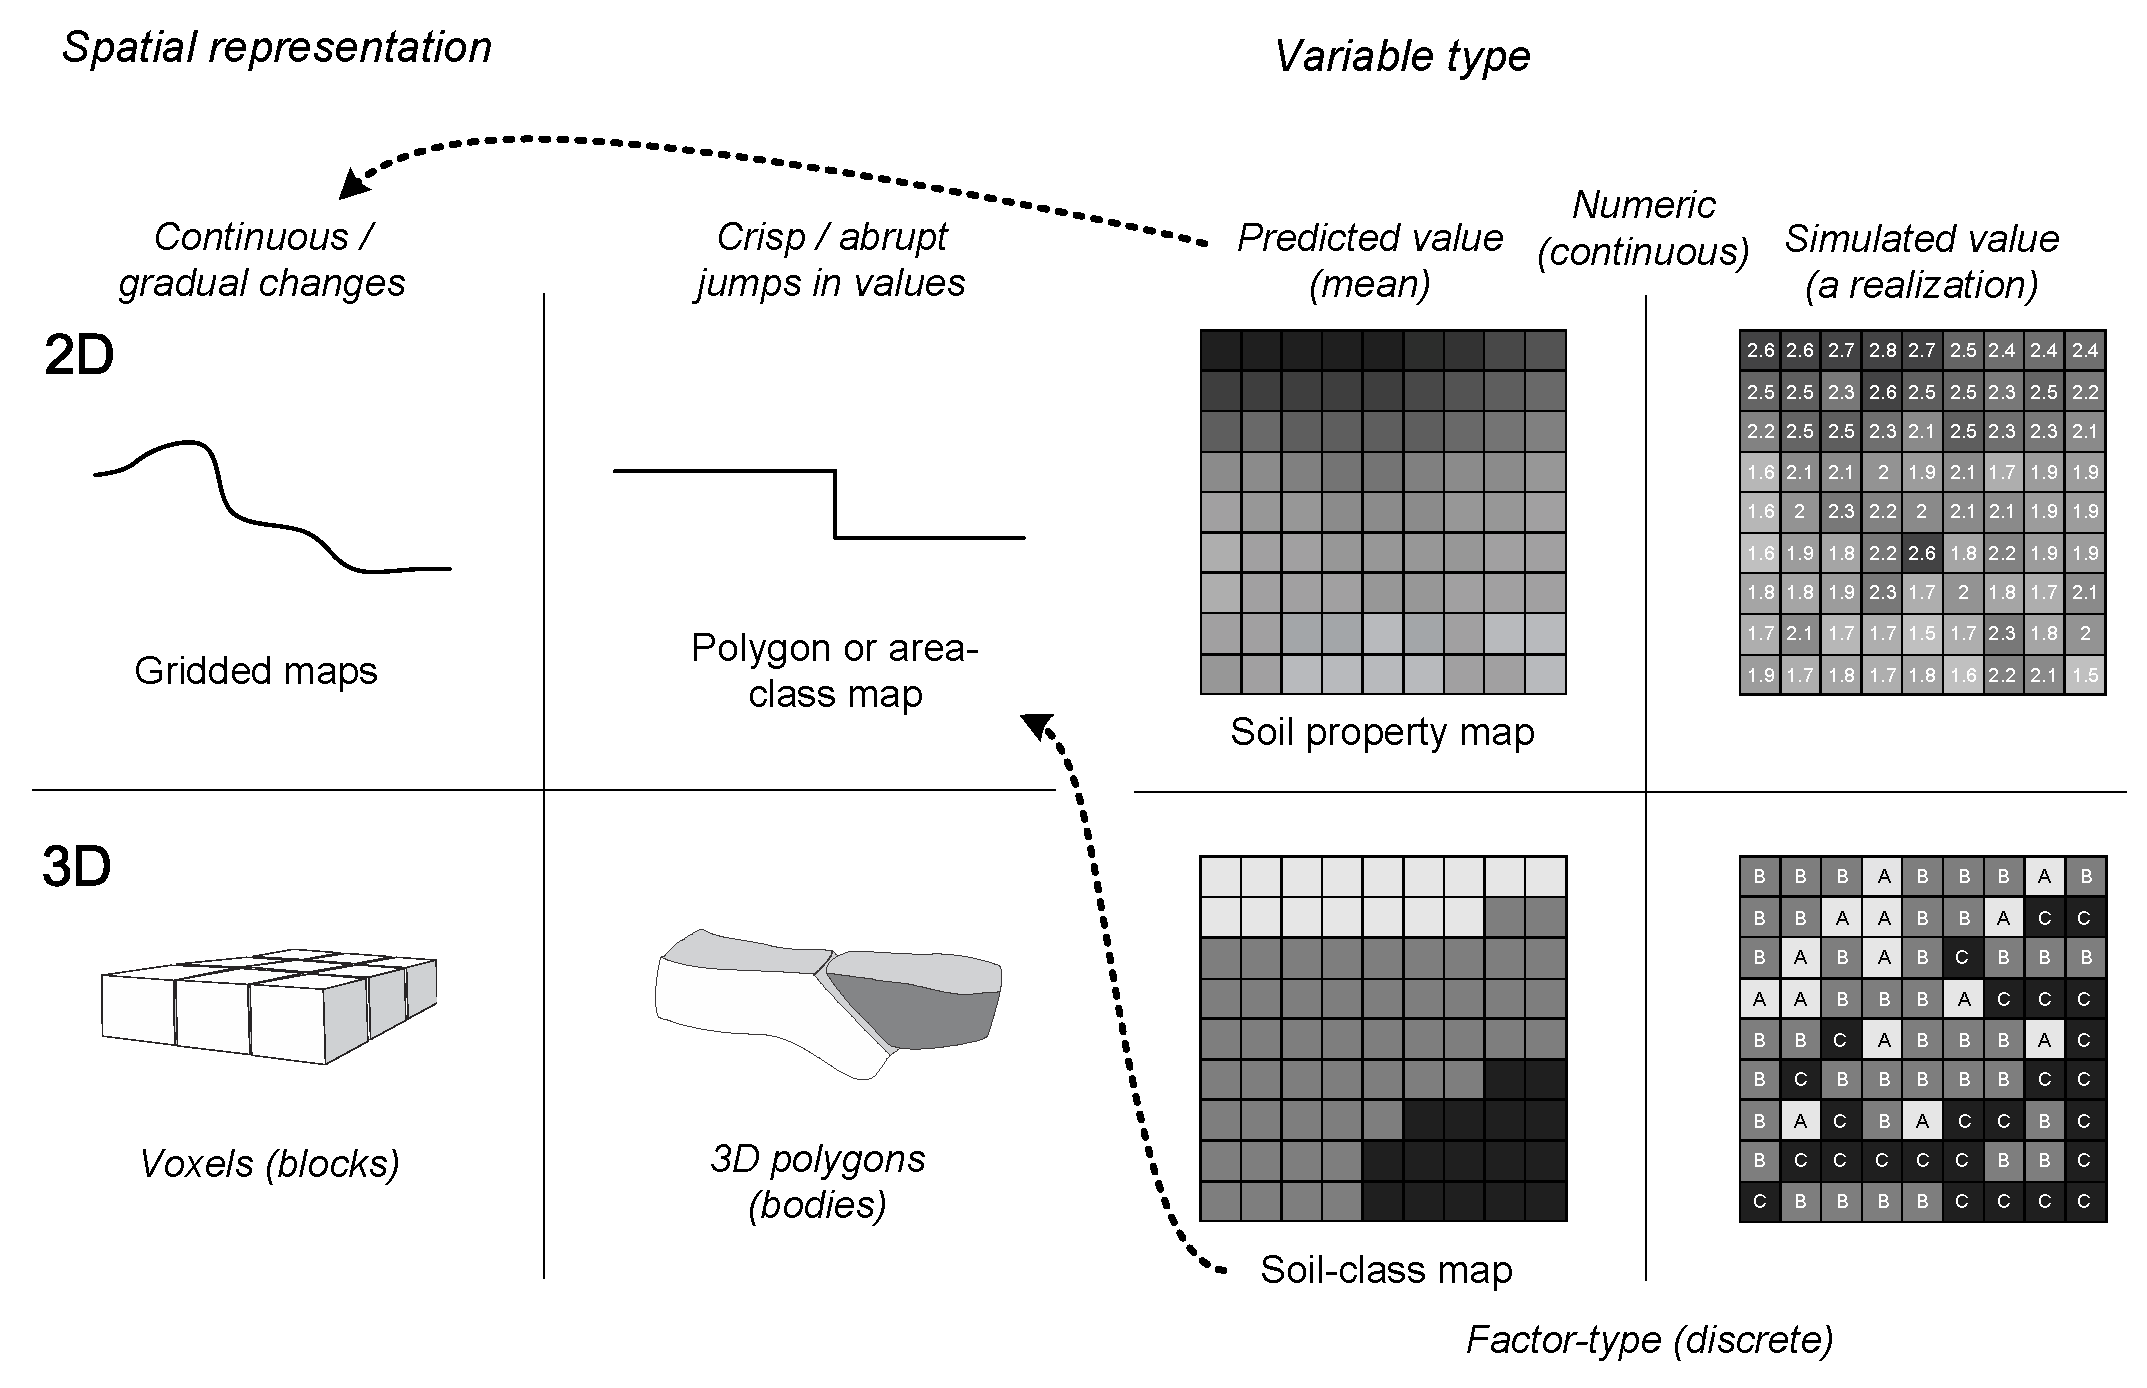 Classification of types of soil maps based on spatial representation and variable type.